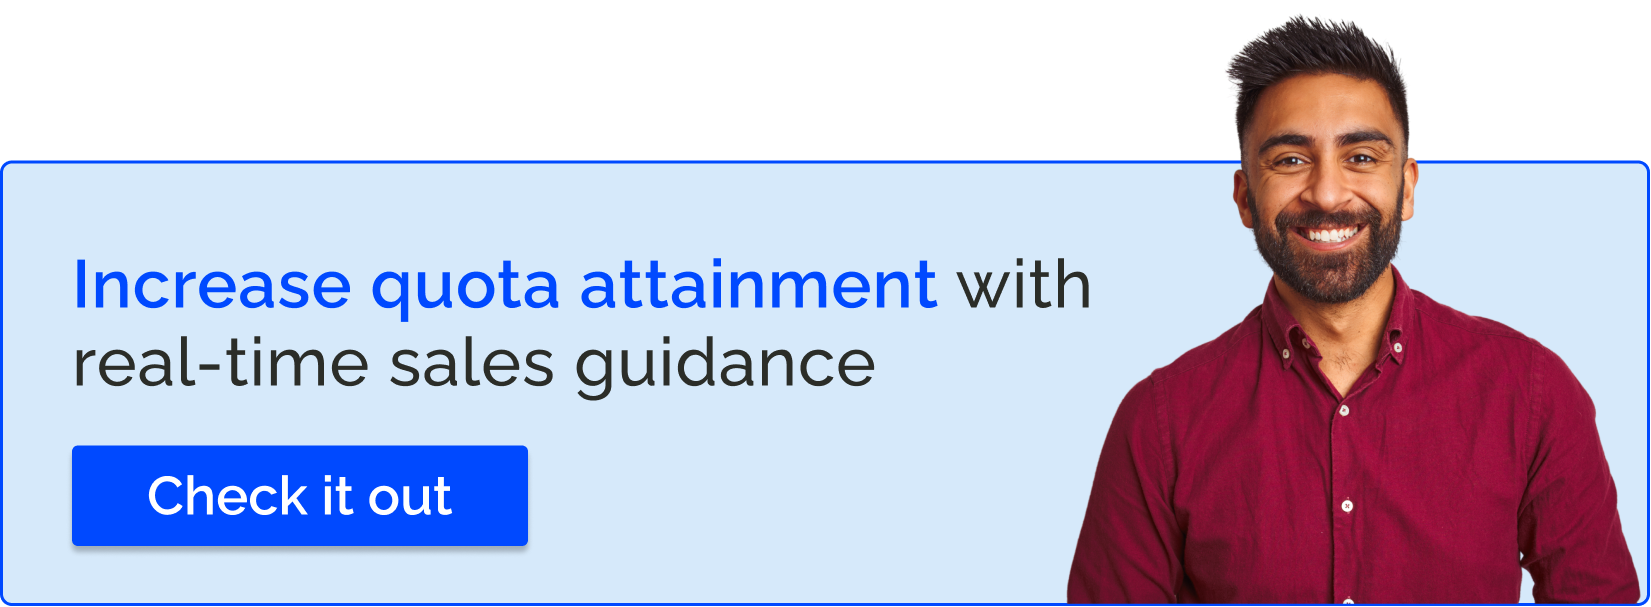 Increase quota attainment with real-time sales guidance